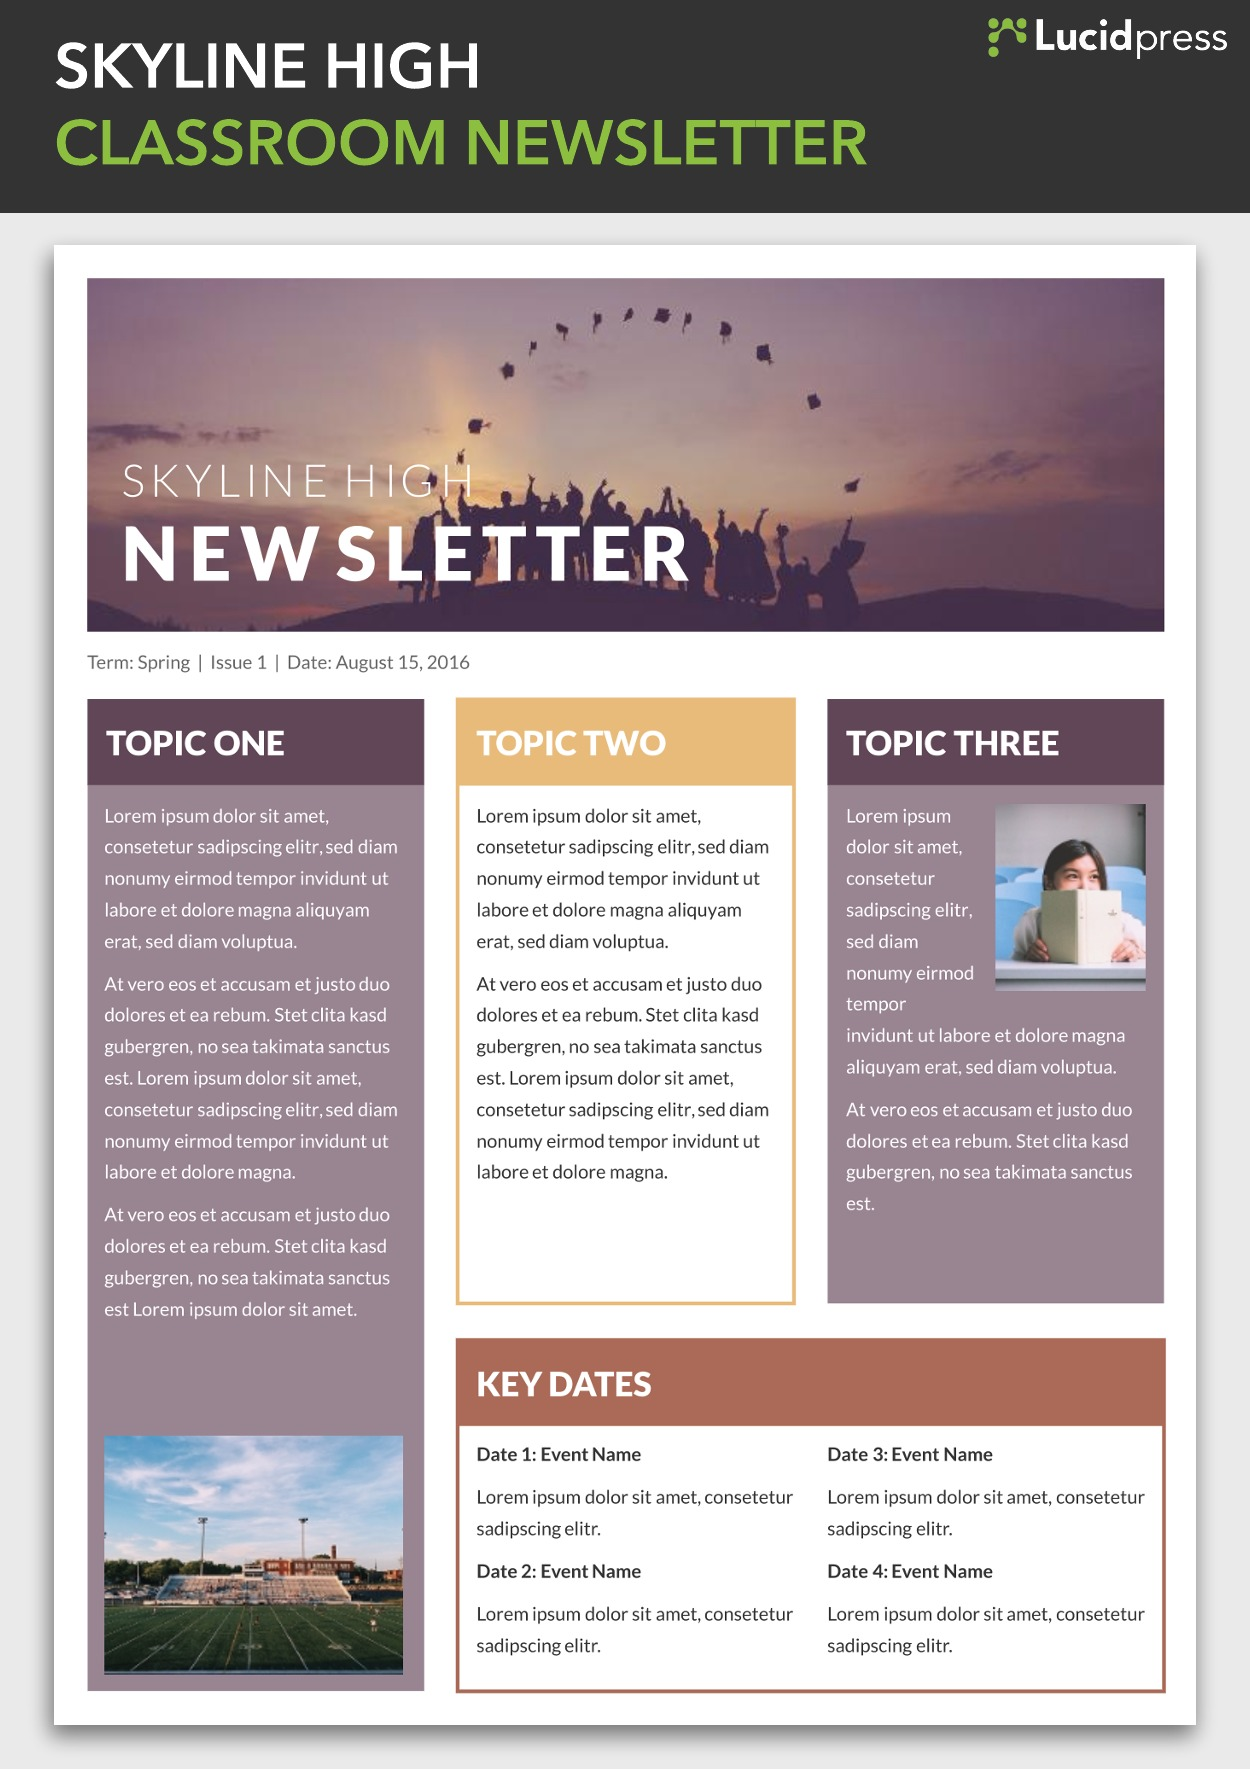 13 Best Newsletter Design Ideas to Inspire You | Lucidpress